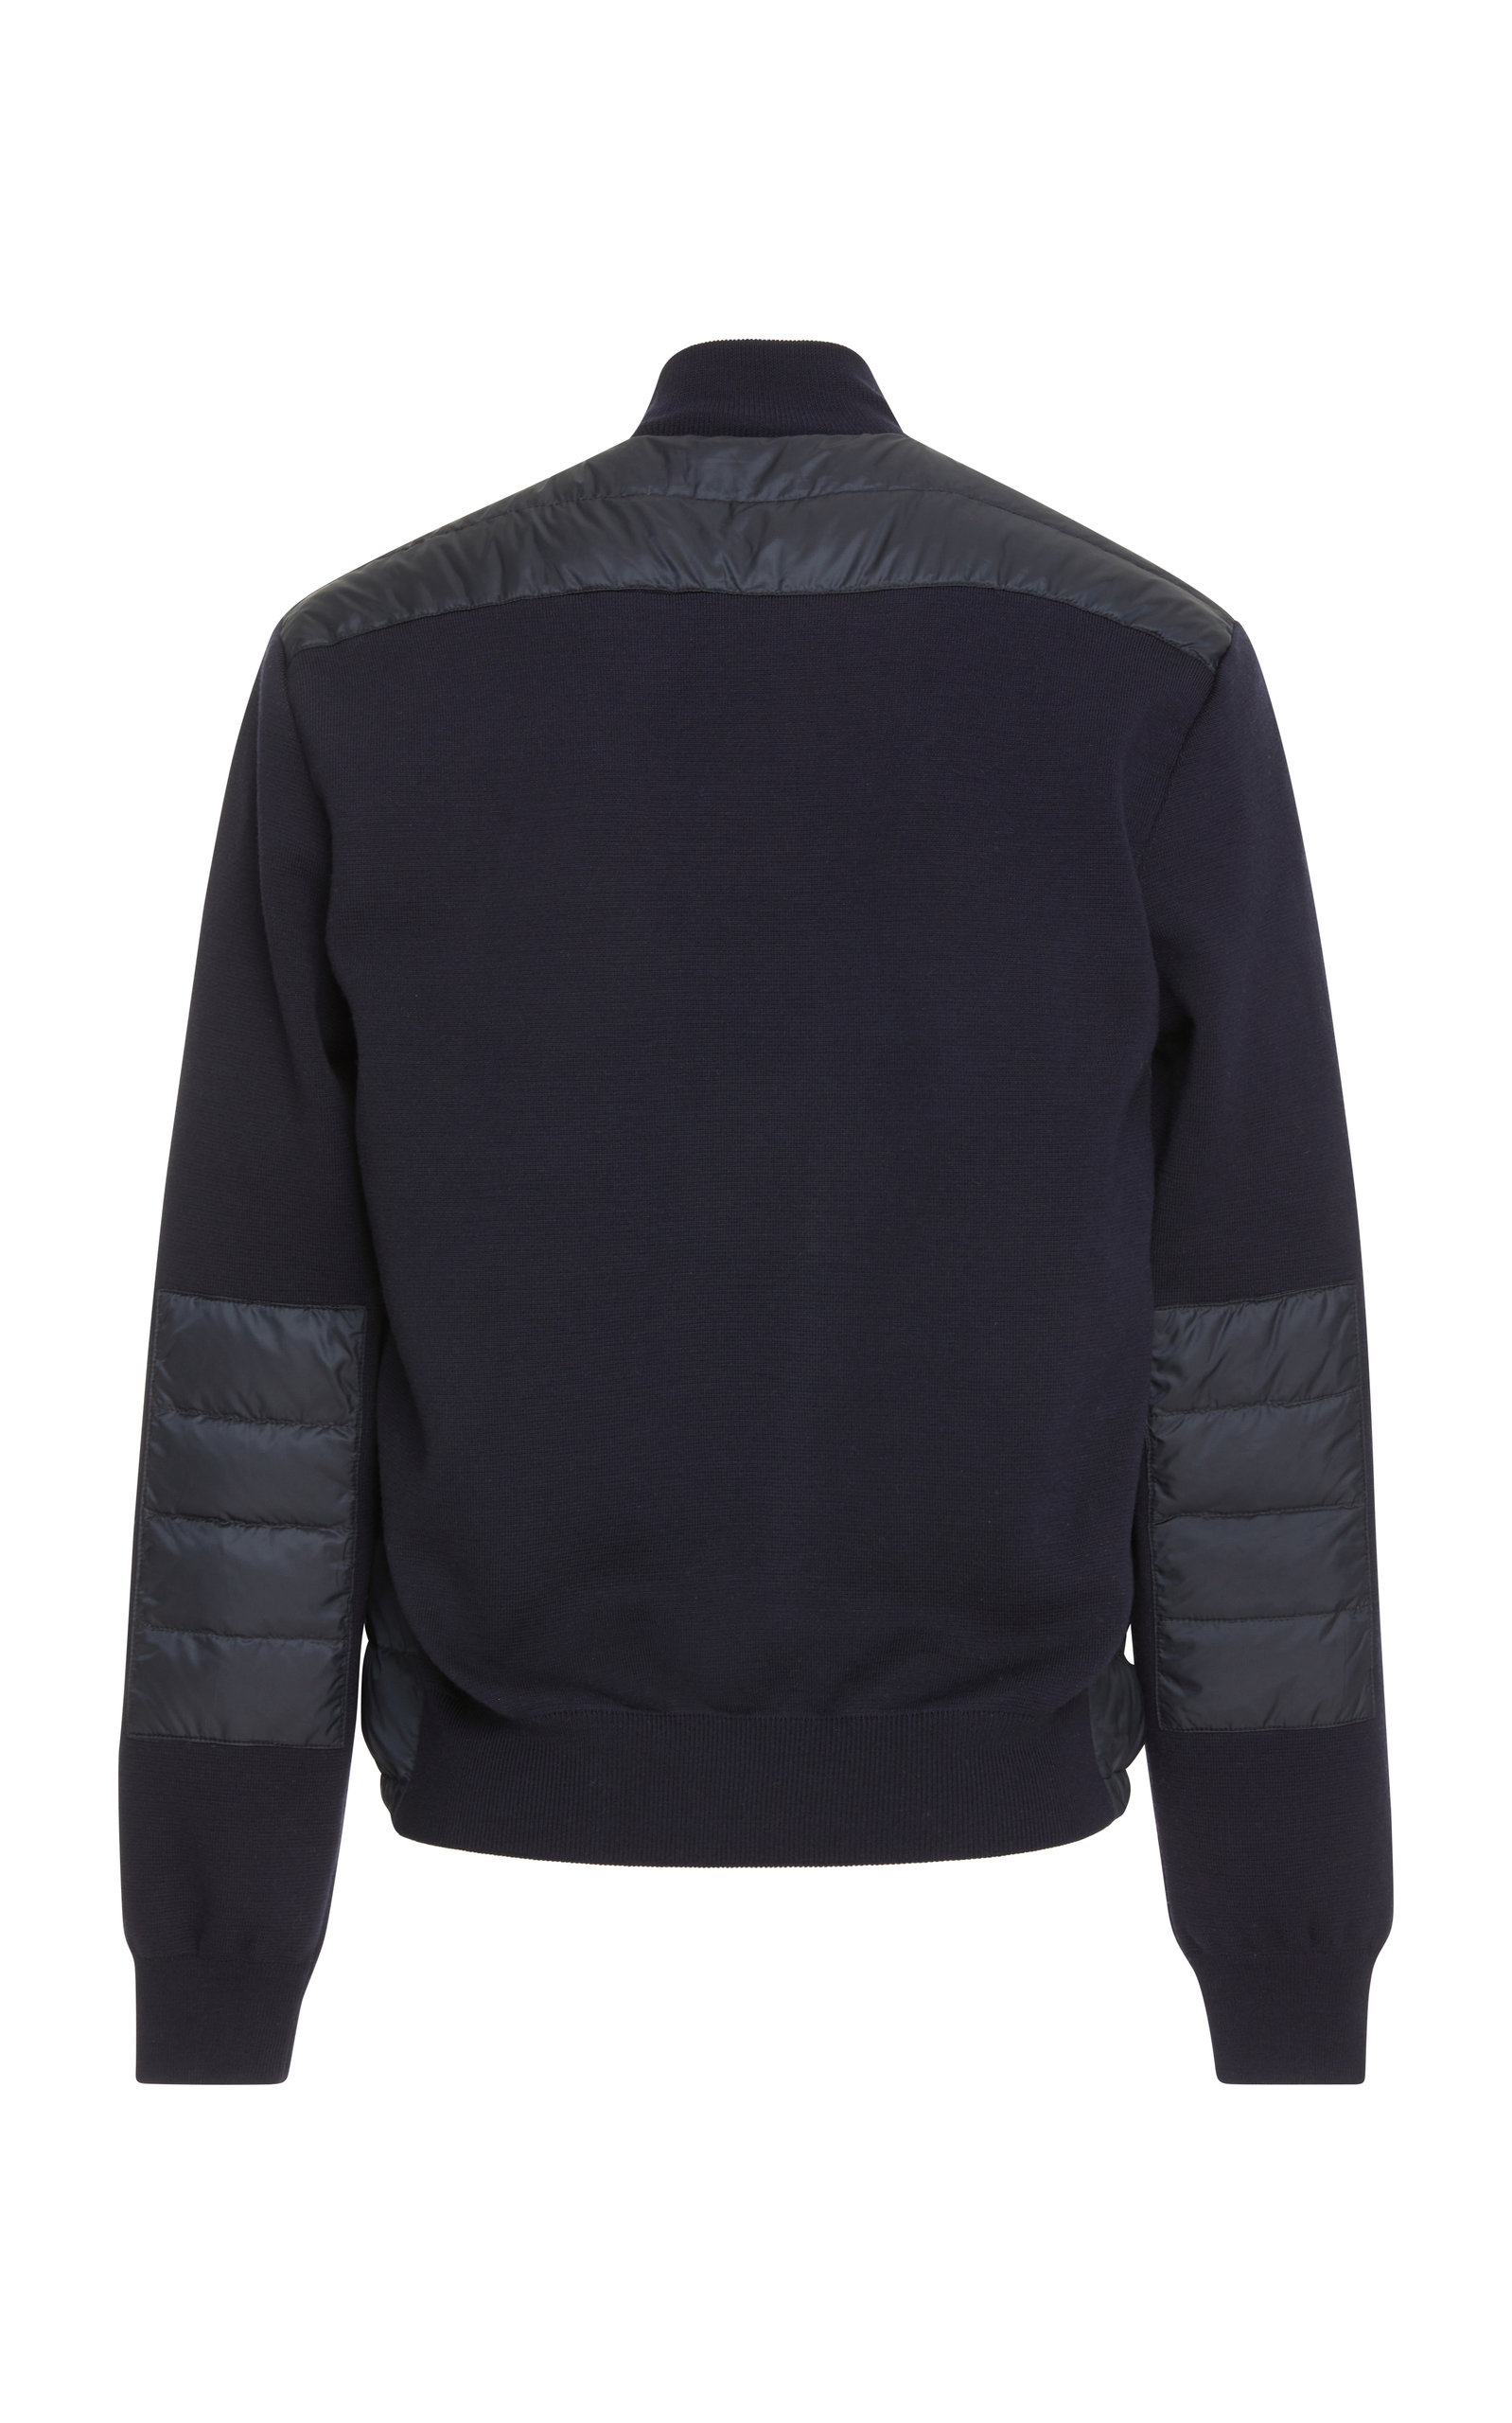 Shell Jacket Wool And Shop Stretch Lauren Paneled Navy In Quilted Ralph HxZUw4IqR